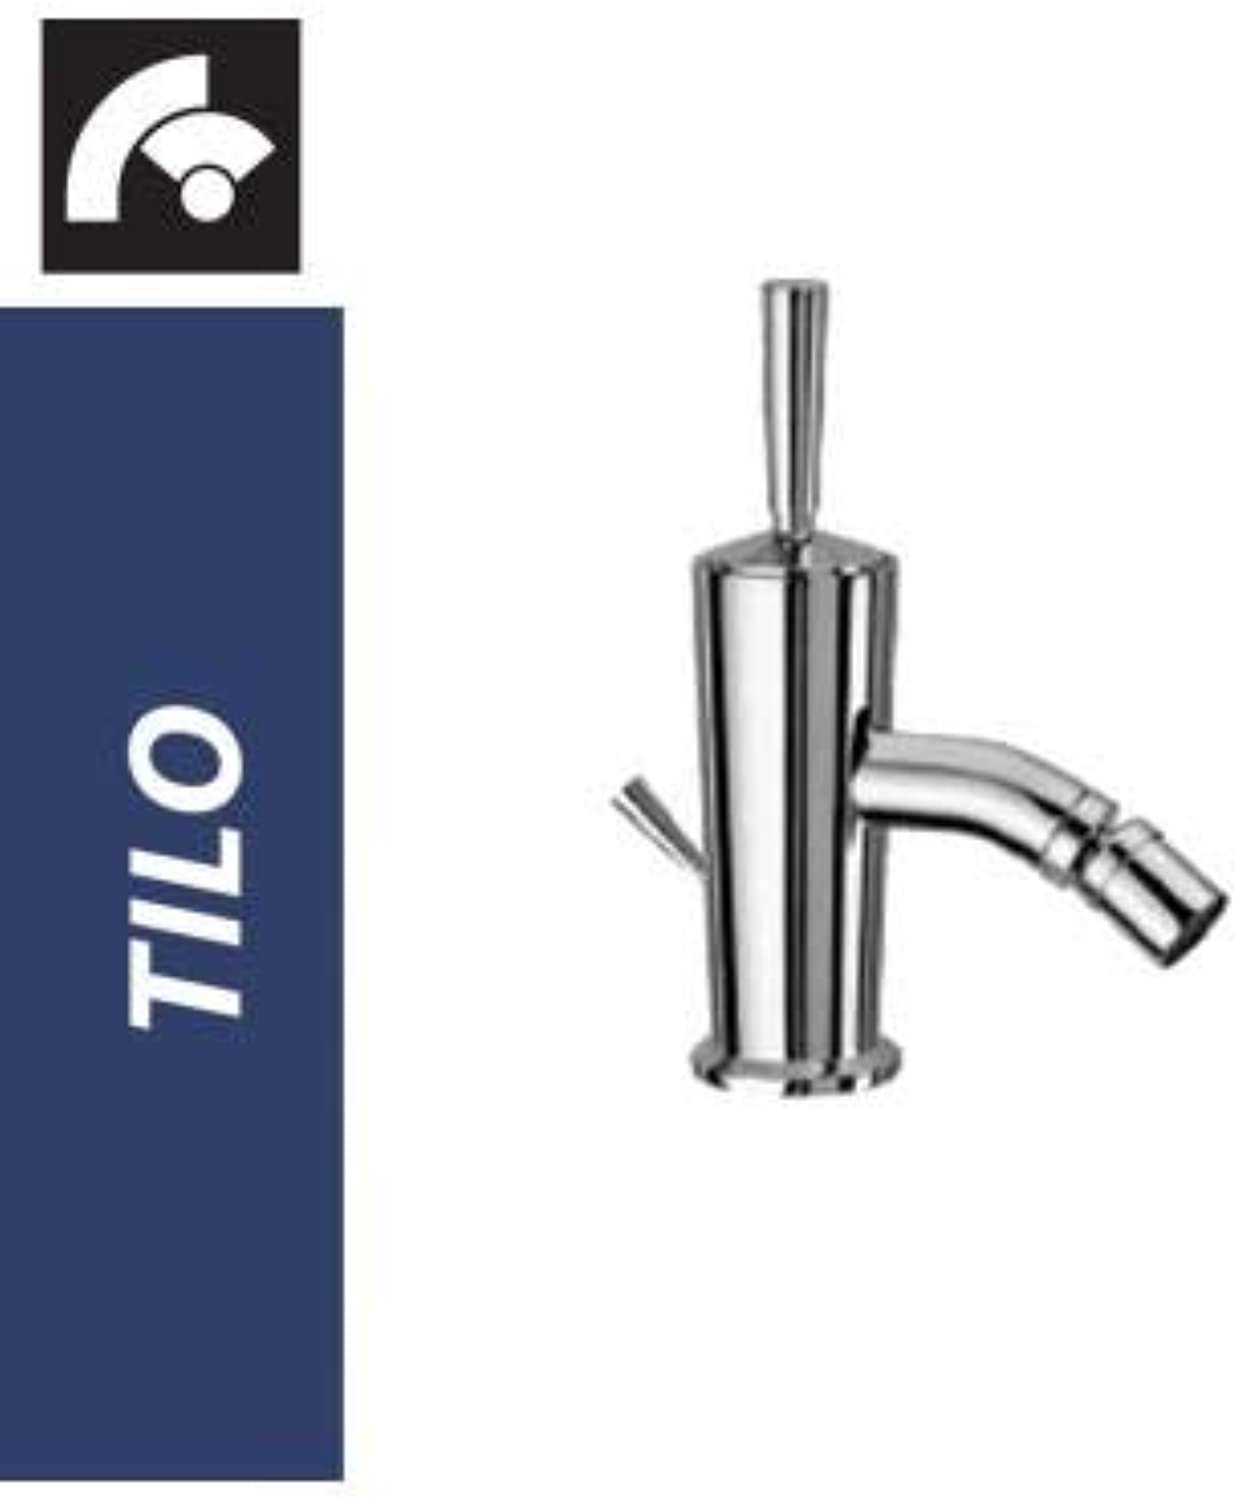 Fir  75242251000?Tilo Bidet Mixer with Waste